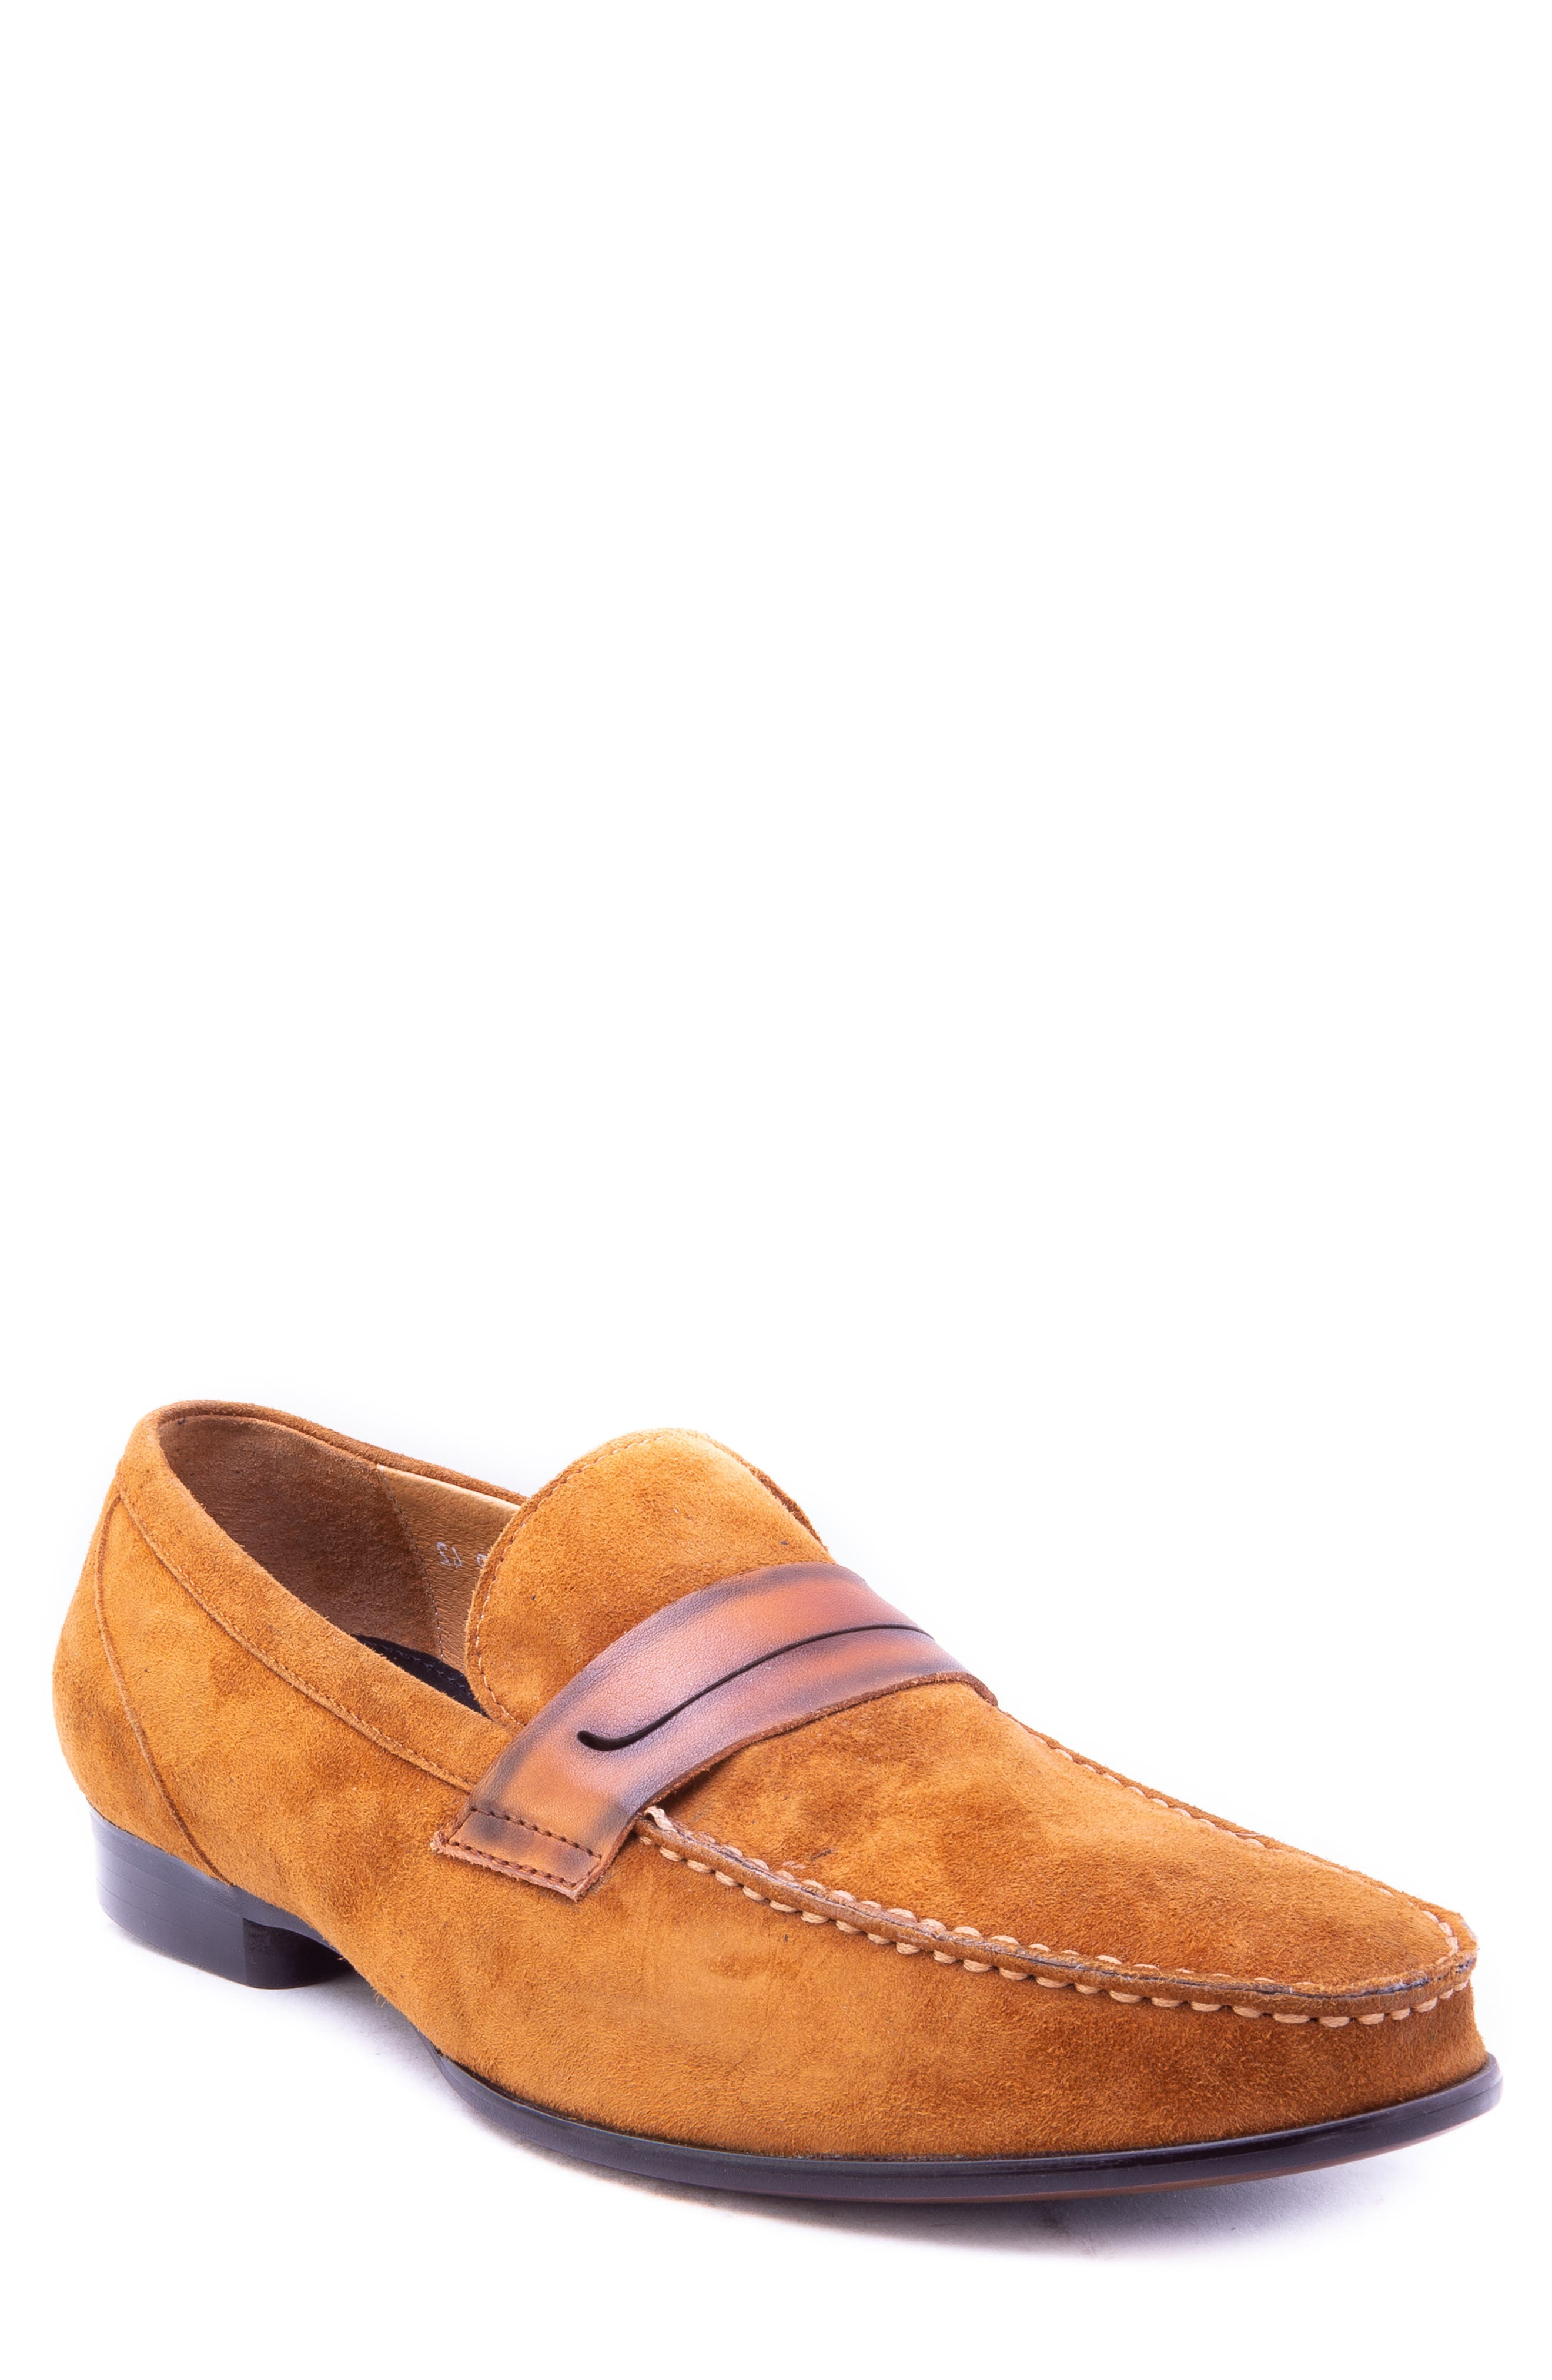 Opie Penny Loafer,                             Main thumbnail 1, color,                             COGNAC SUEDE/ LEATHER